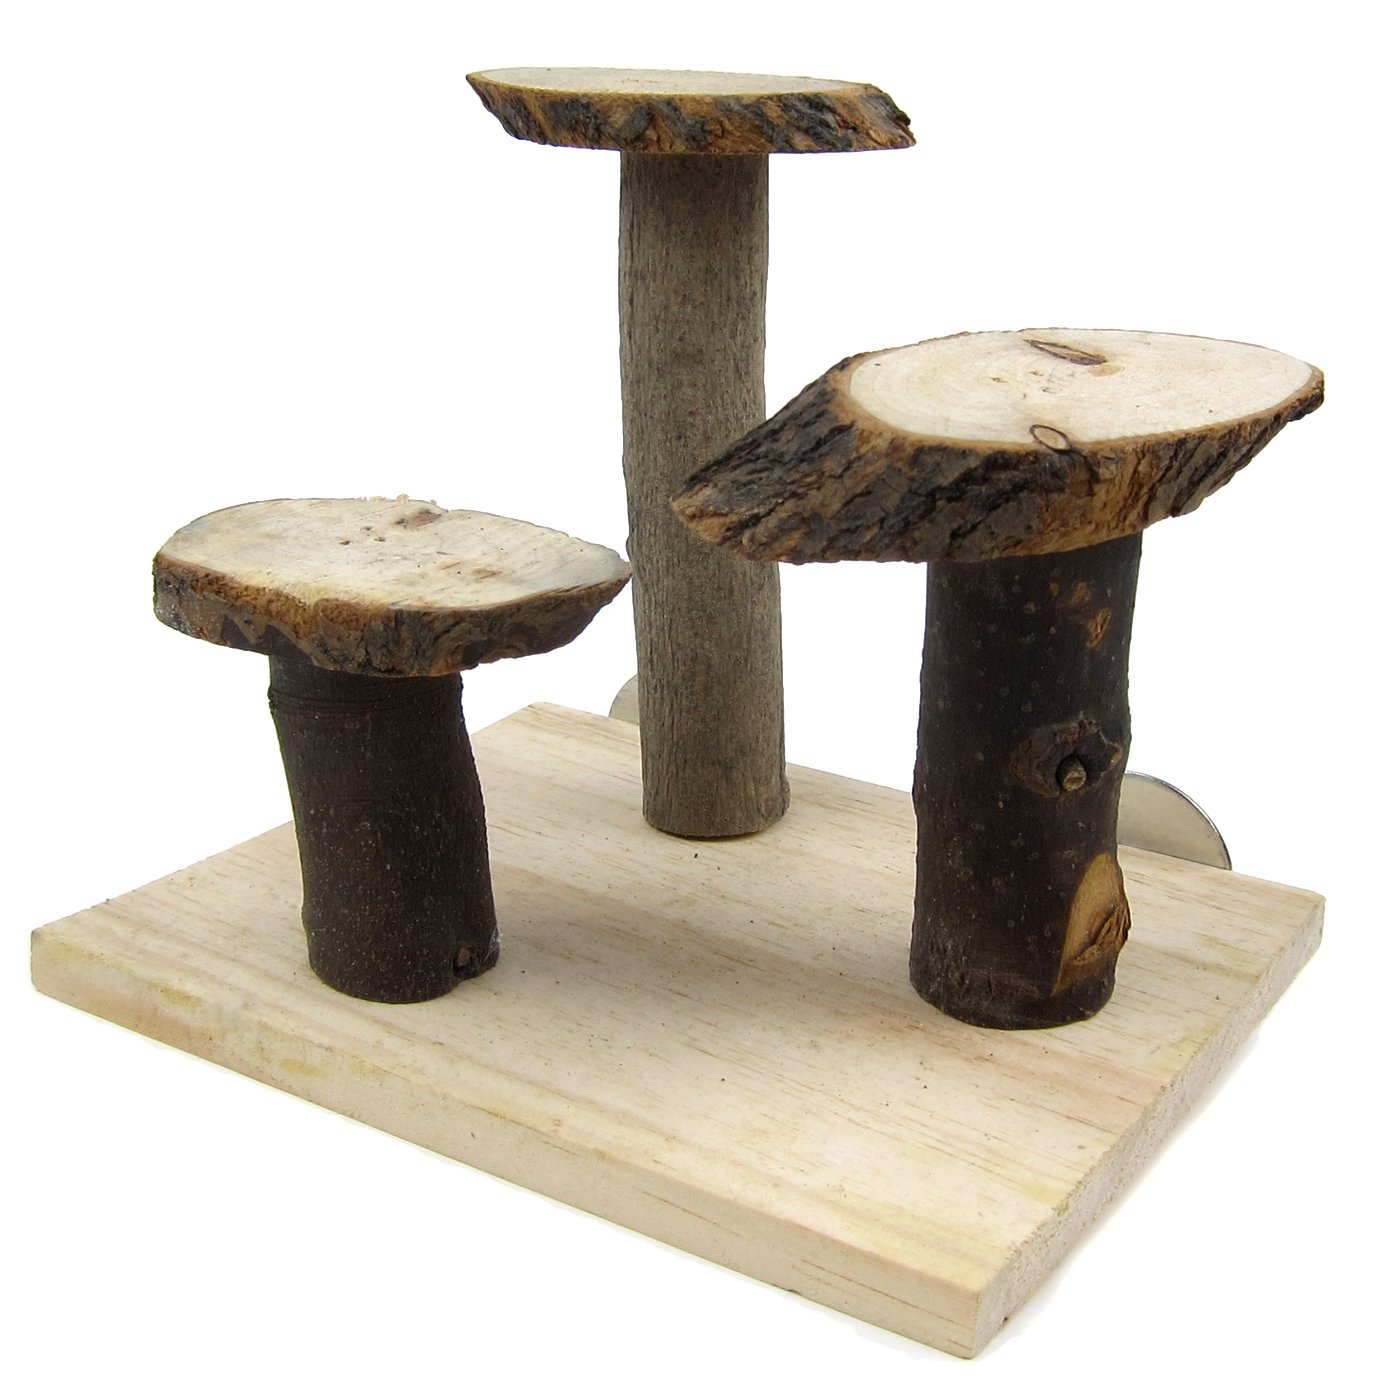 Alfie Pet by Petoga Couture - Renny Natural Wood Jumping Platform for Birds